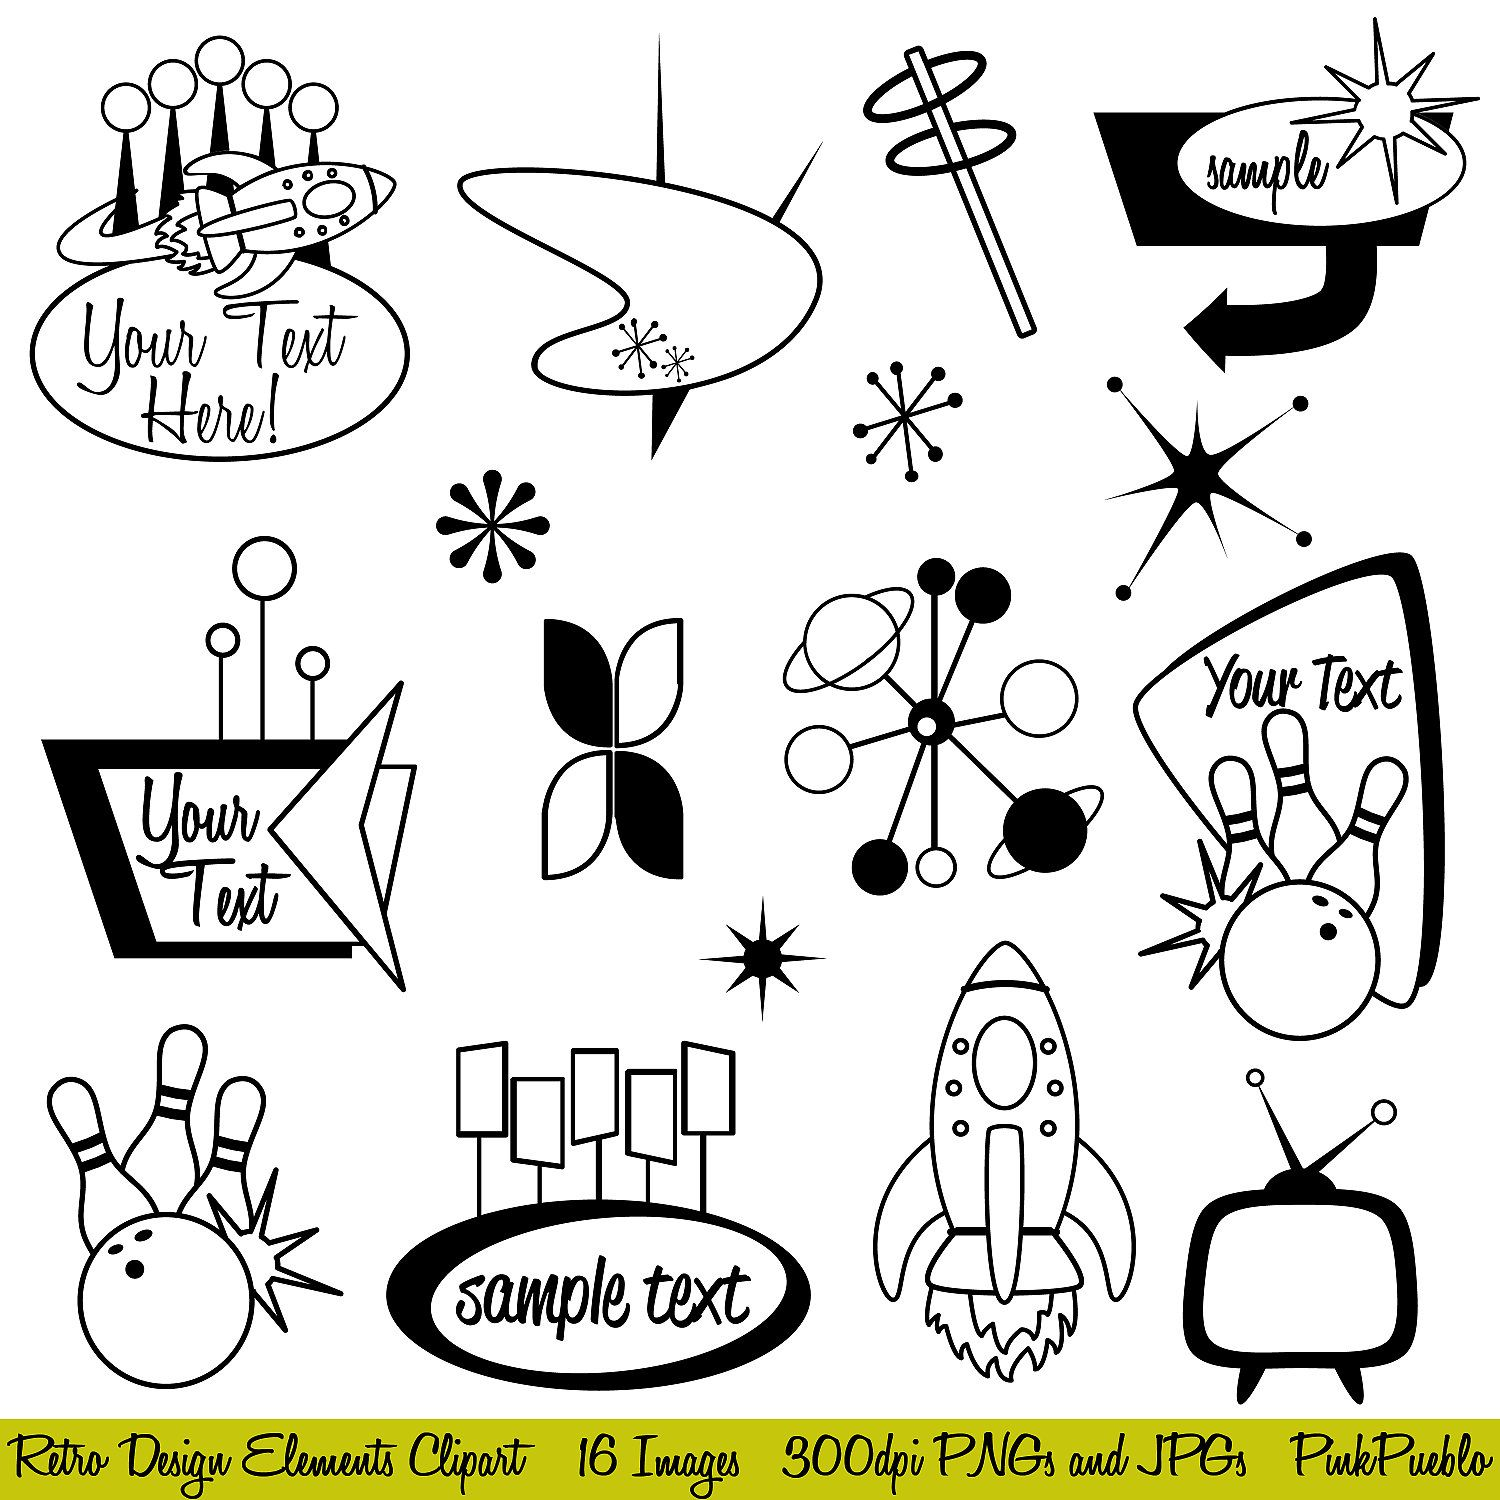 Clip Art Retro Clipart retro clipart clip art mod or vintage commercial and personal use graphics design